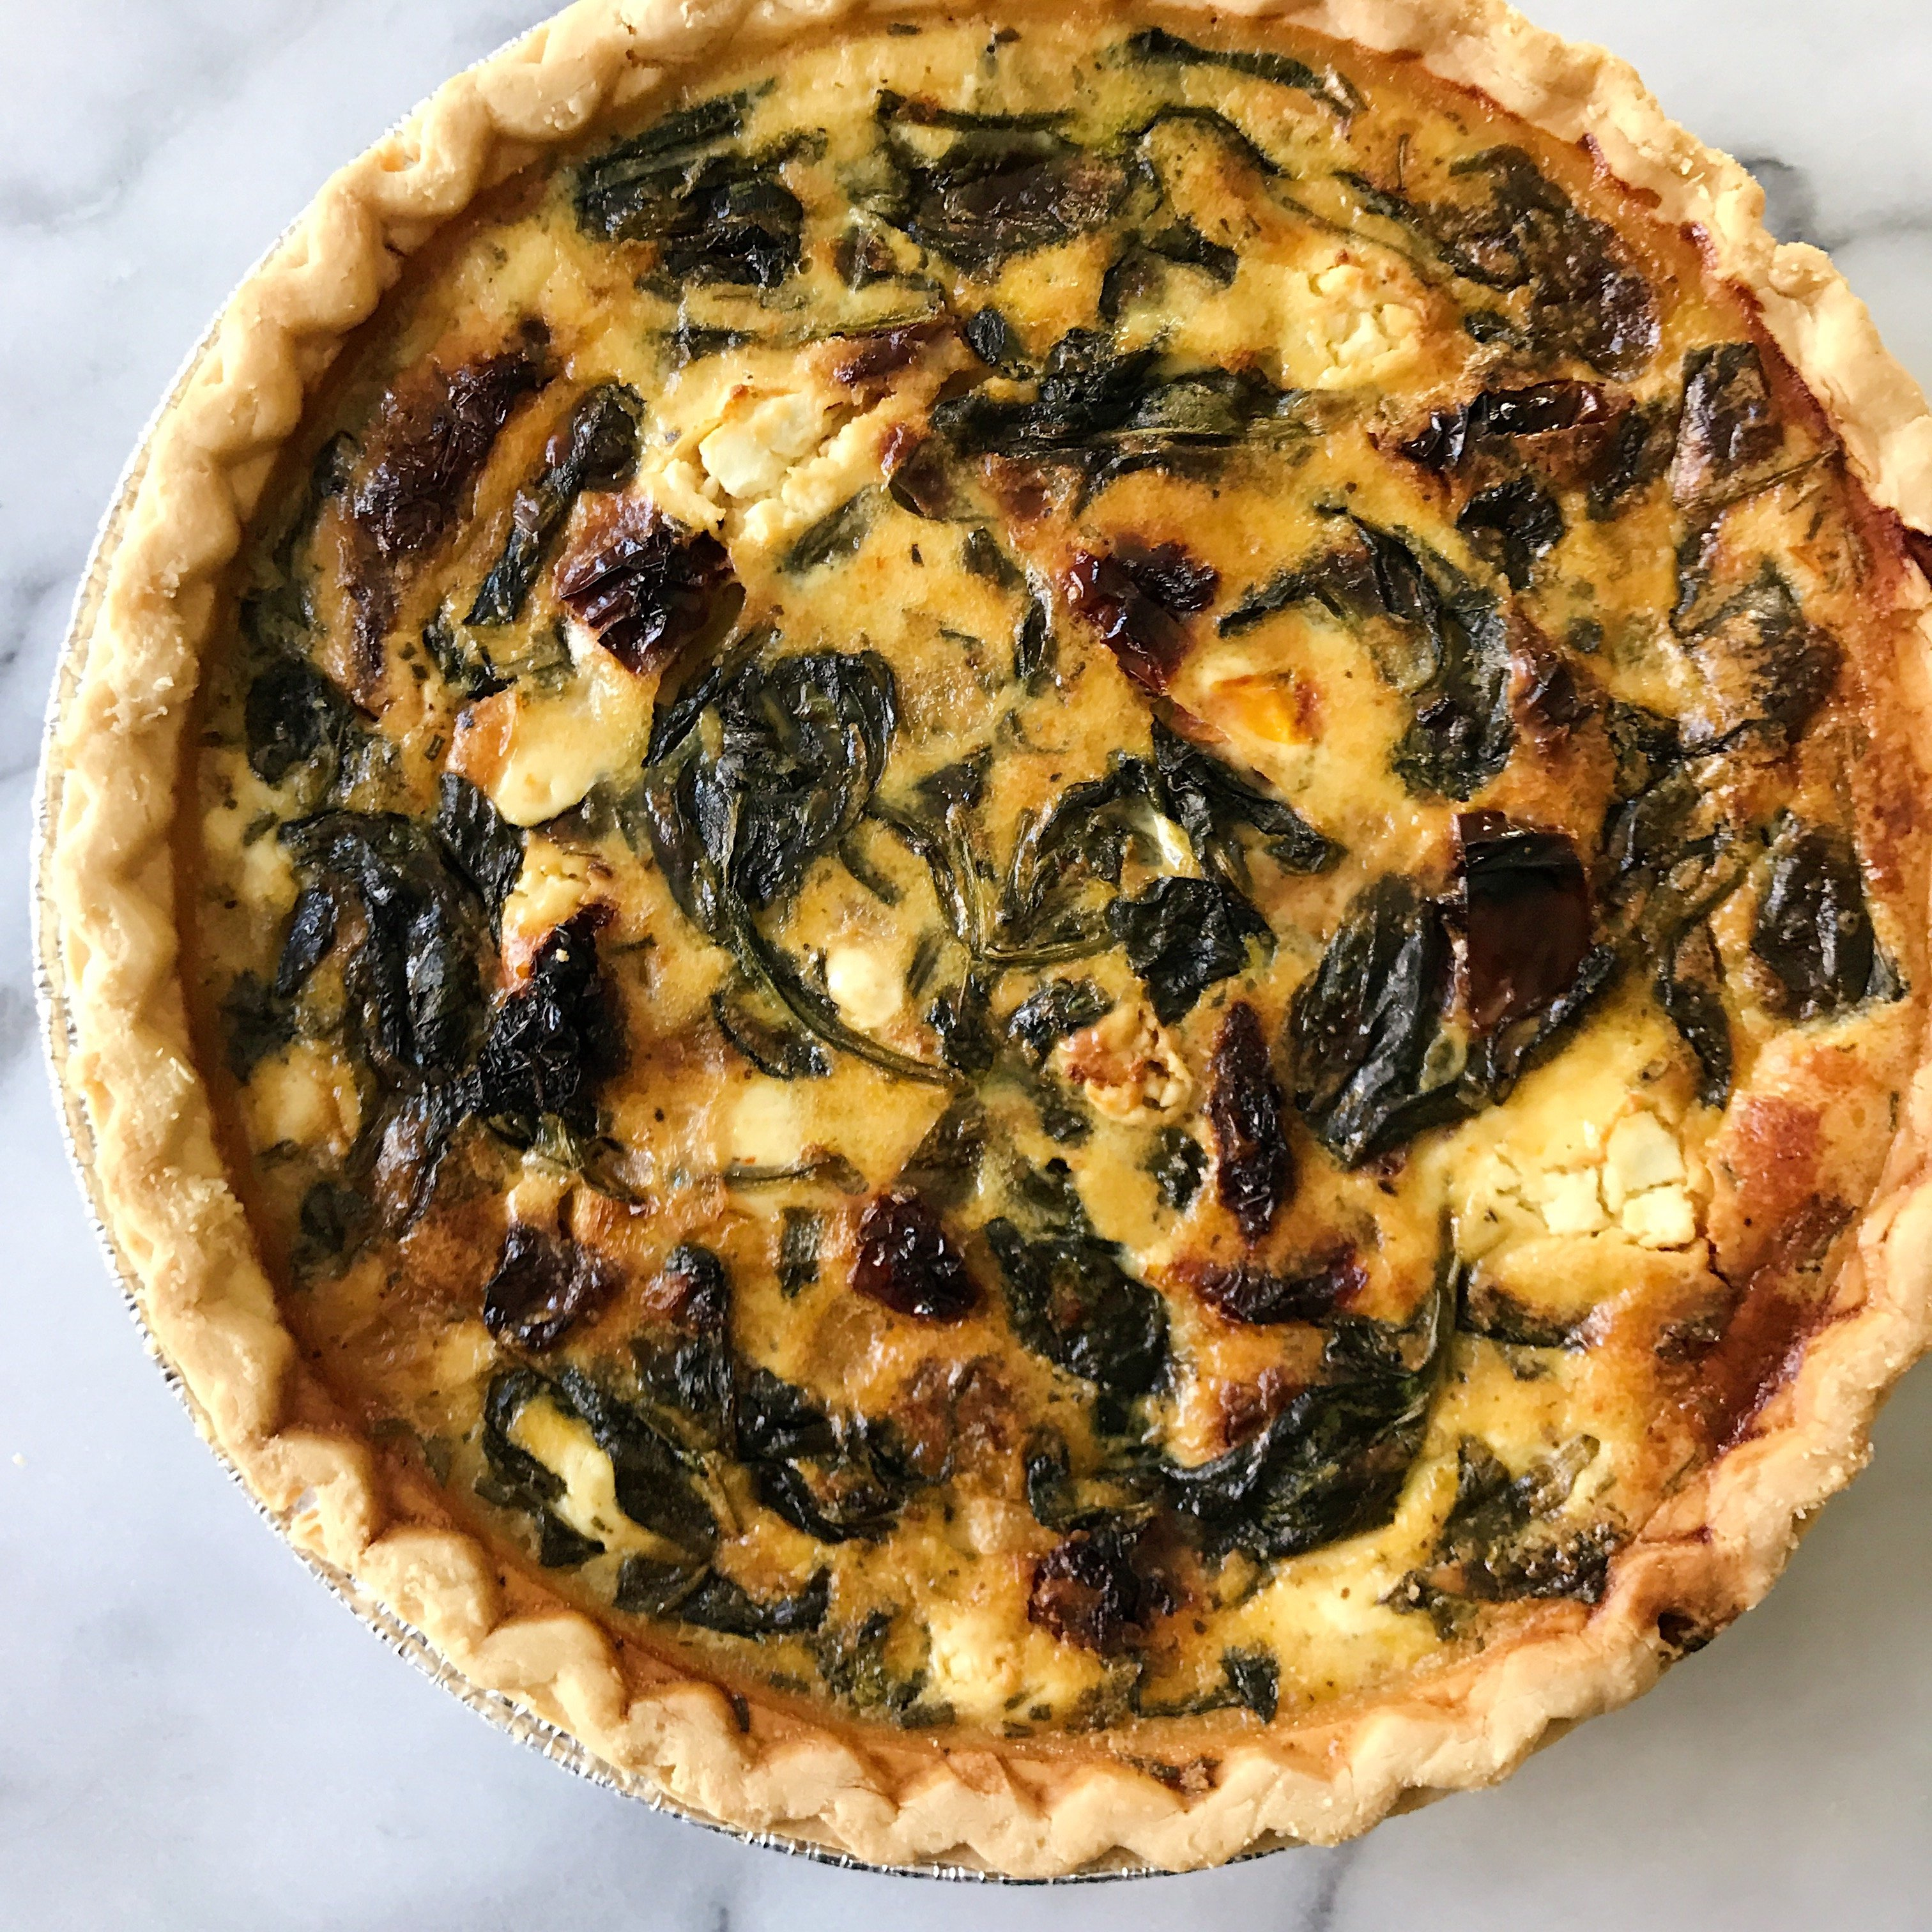 Whole Foods Quiche Order